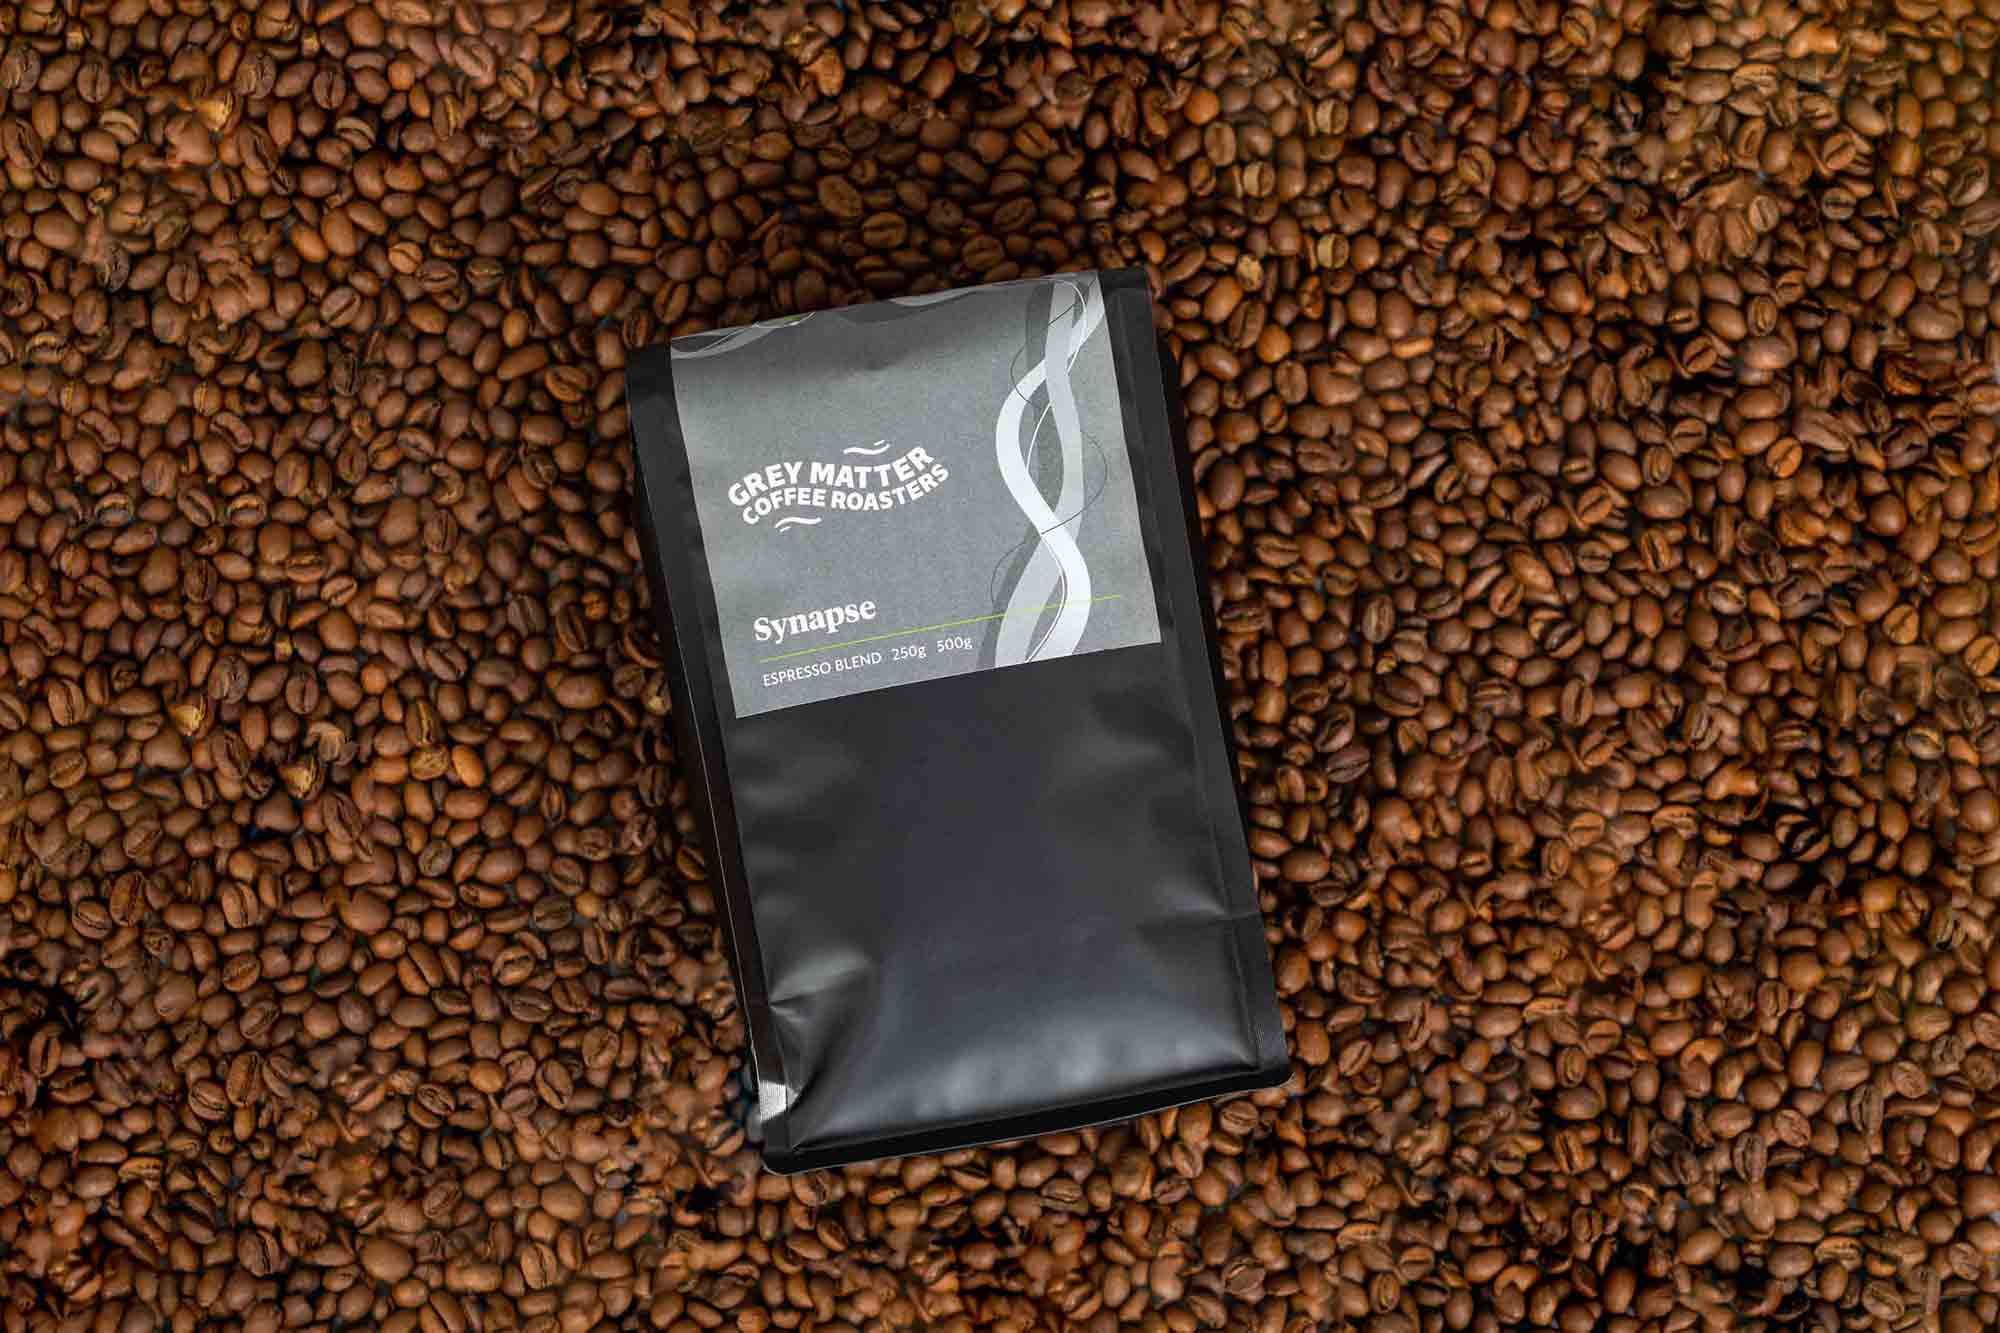 The Grey Matter Coffee Roaster logo in use on packaging against a backdrop of coffee beans.